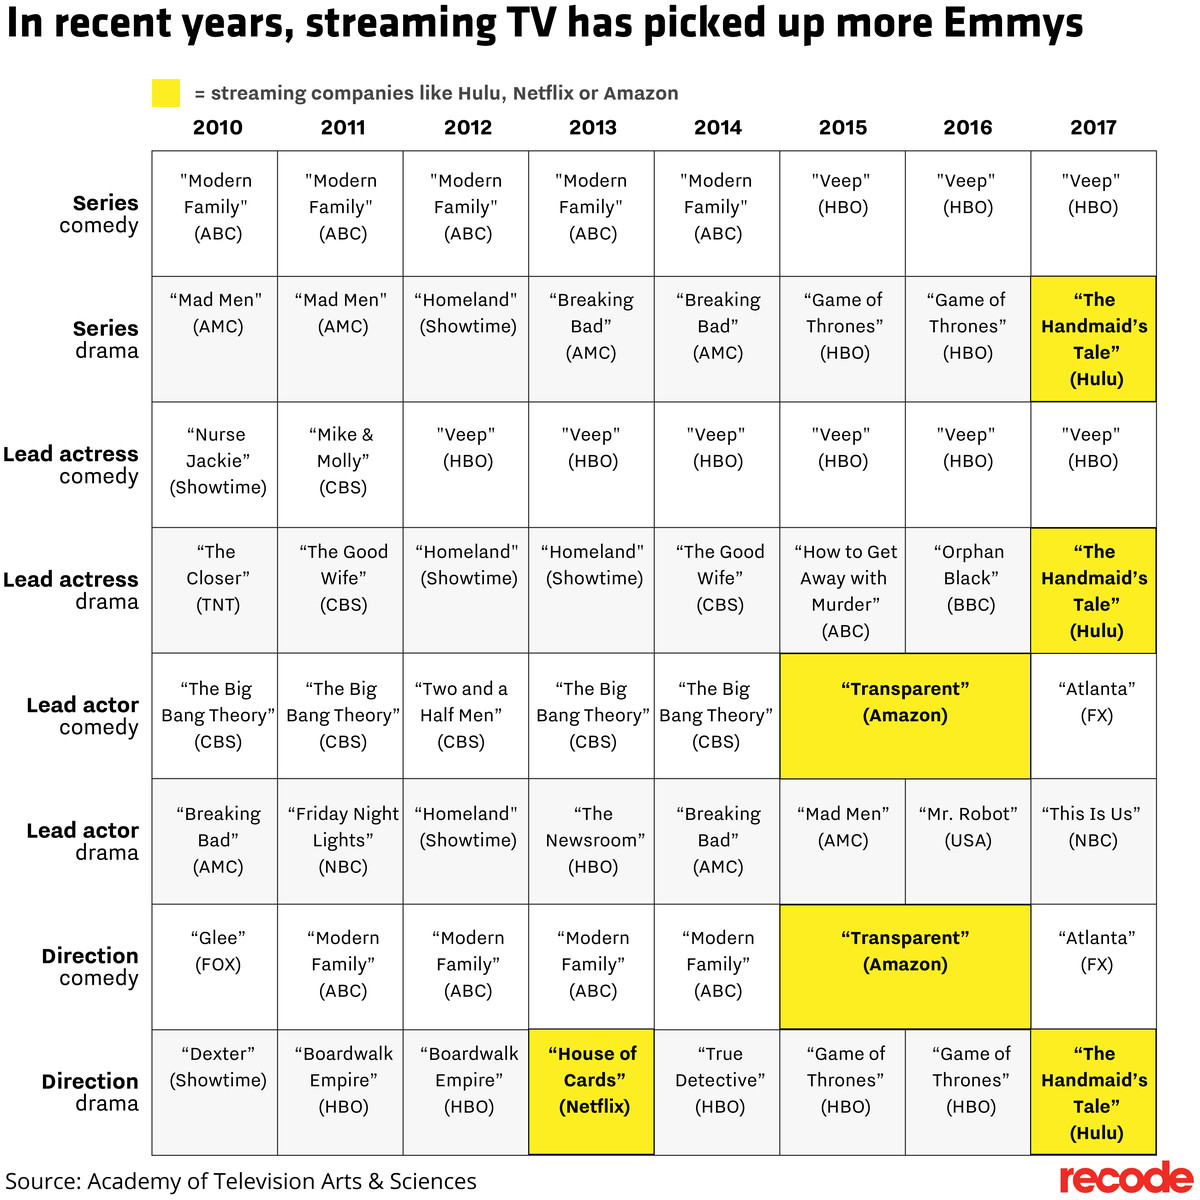 Chart of top Emmy winners since 2010